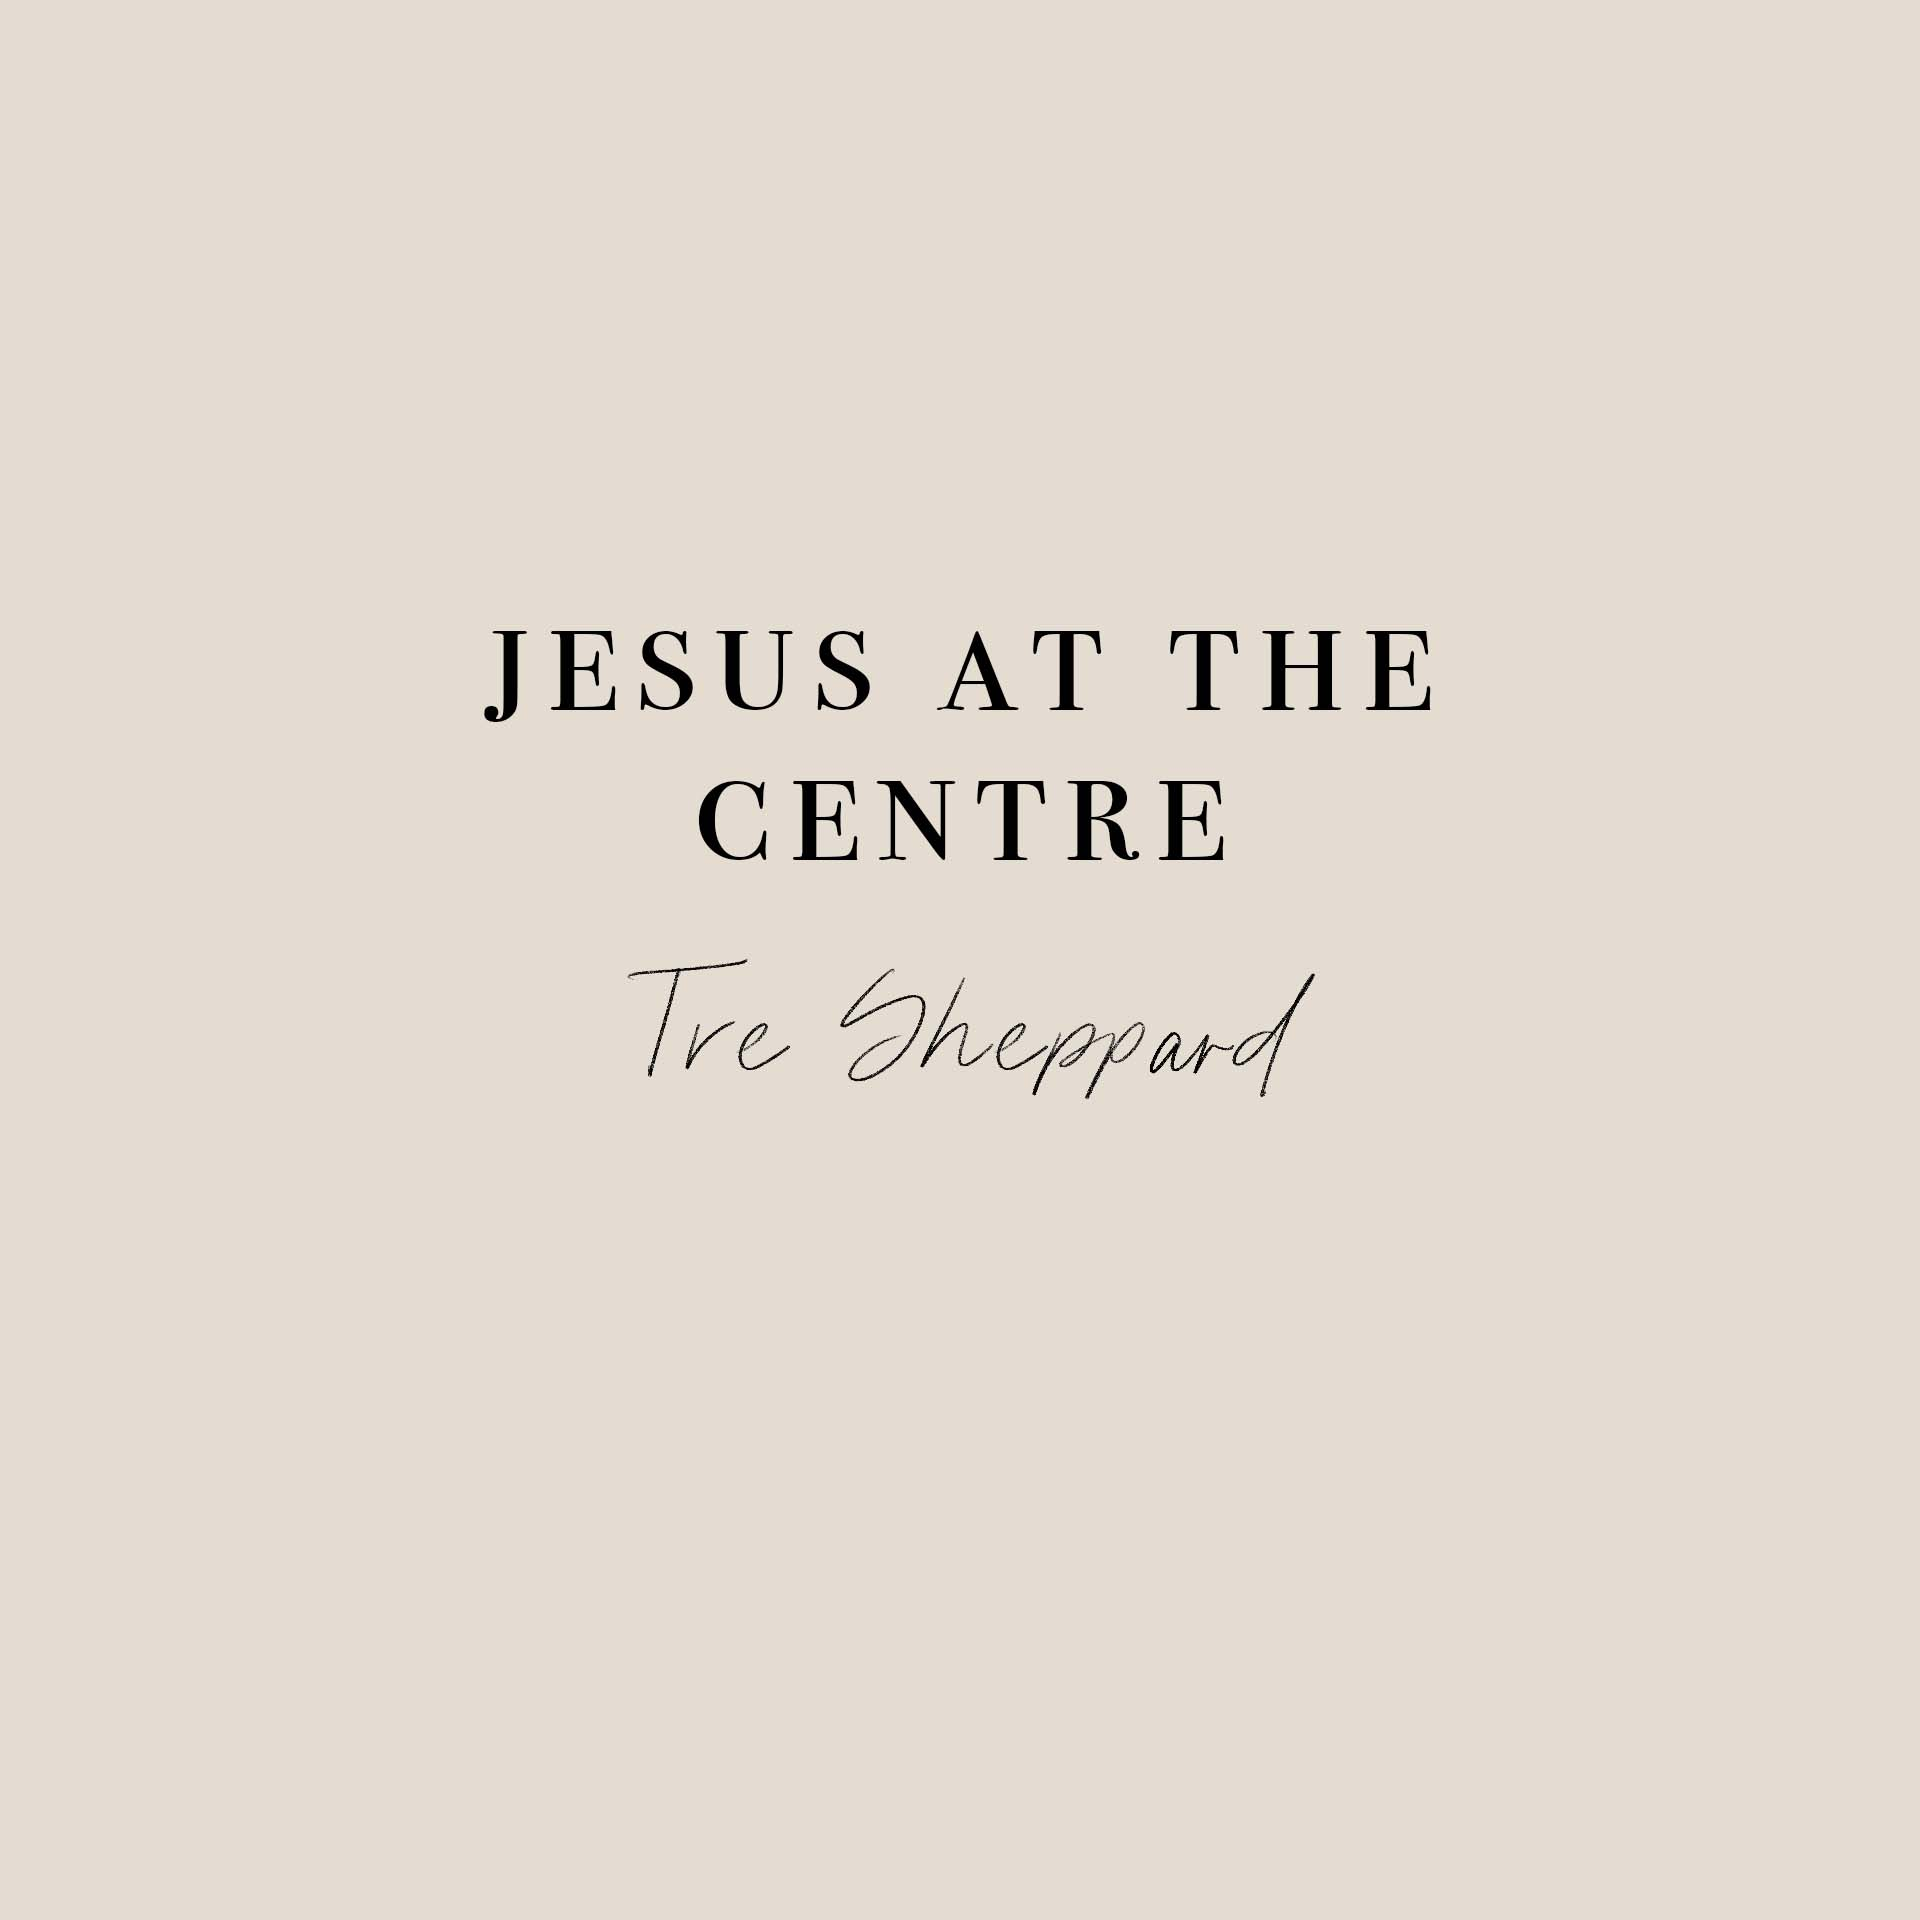 Jesus at the Centre    Join us as Tre explores Hebrews 4 & 5, looking at Jesus as our Great High Priest, and at the centre of history and our lives.